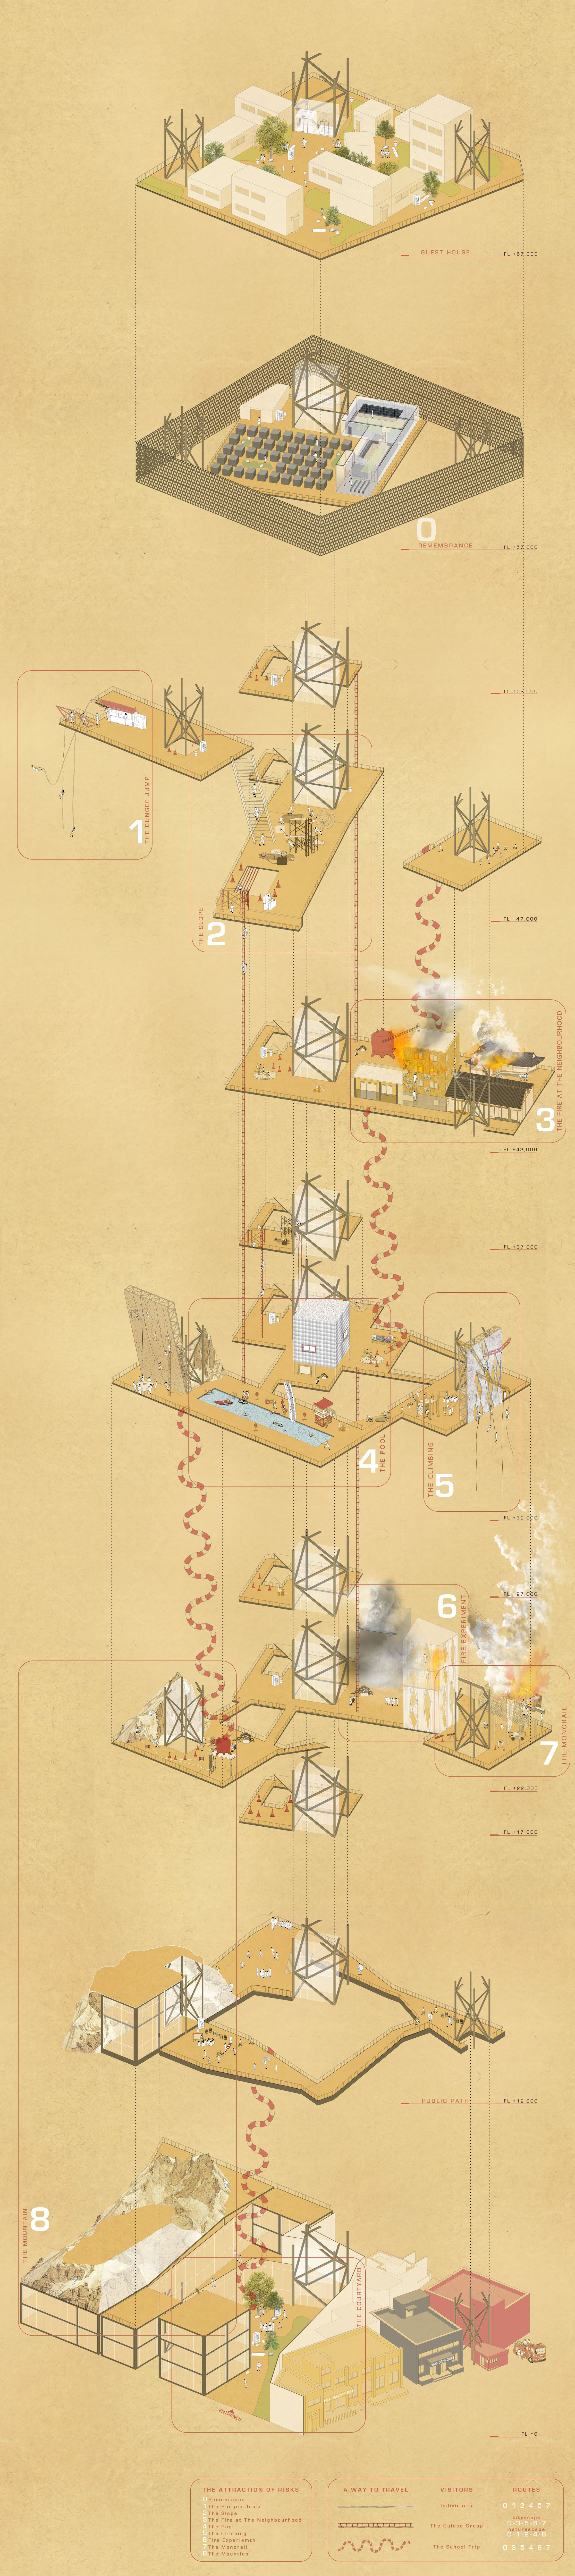 axo drawing of Risk Theme Park architecture, drawing